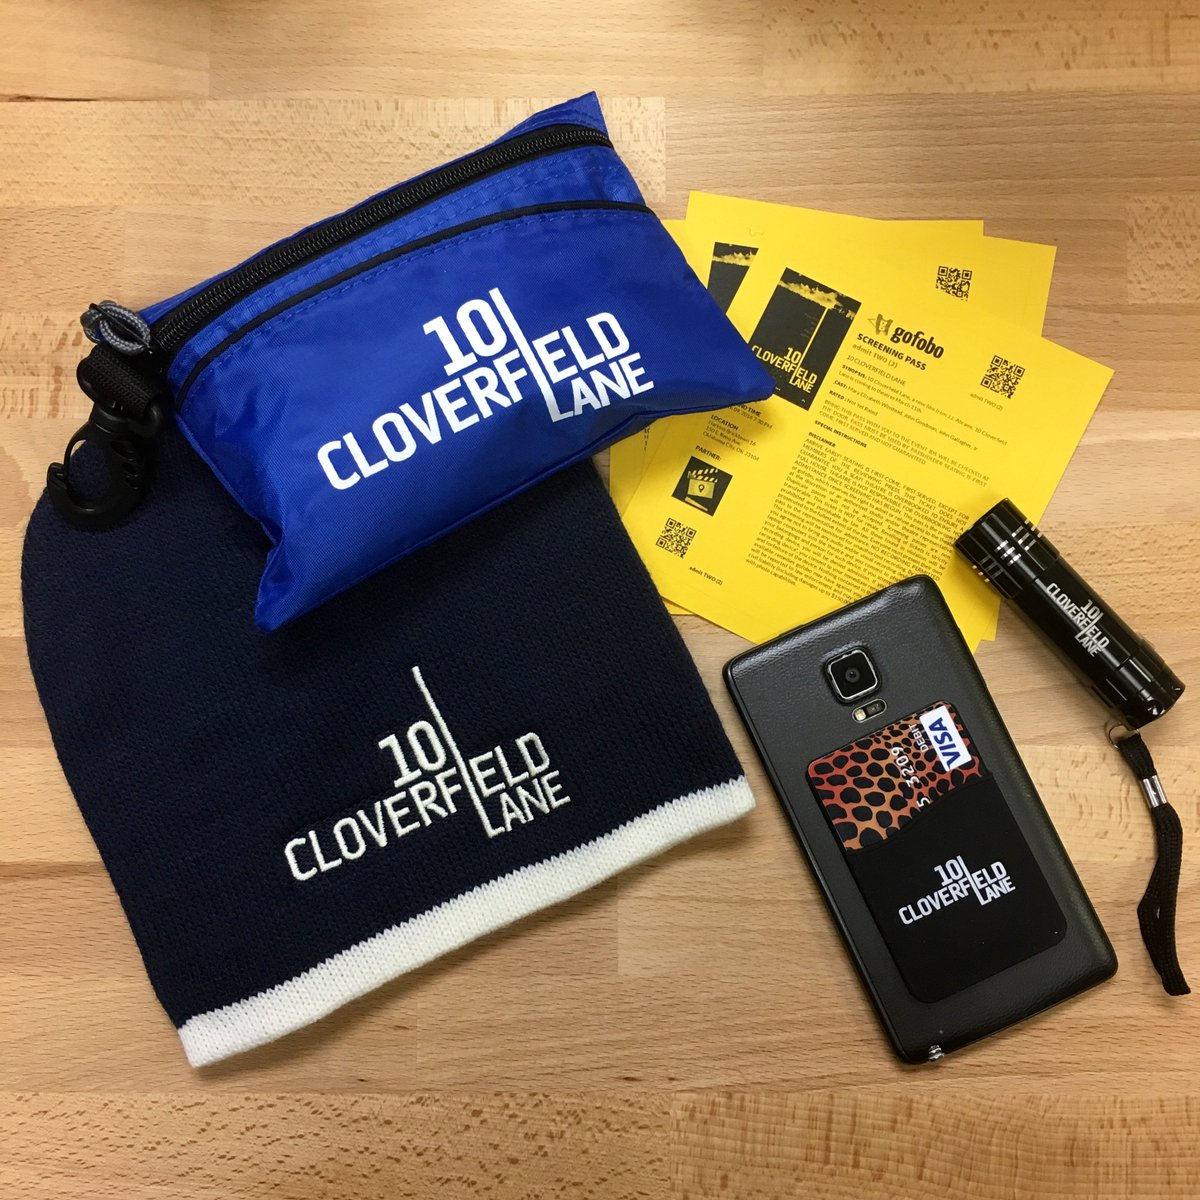 Want to be the first to see @10CloverfieldLn? We have screening passes and survival kits! RT for your chance to WIN! https://t.co/G5s6Qr1TMI